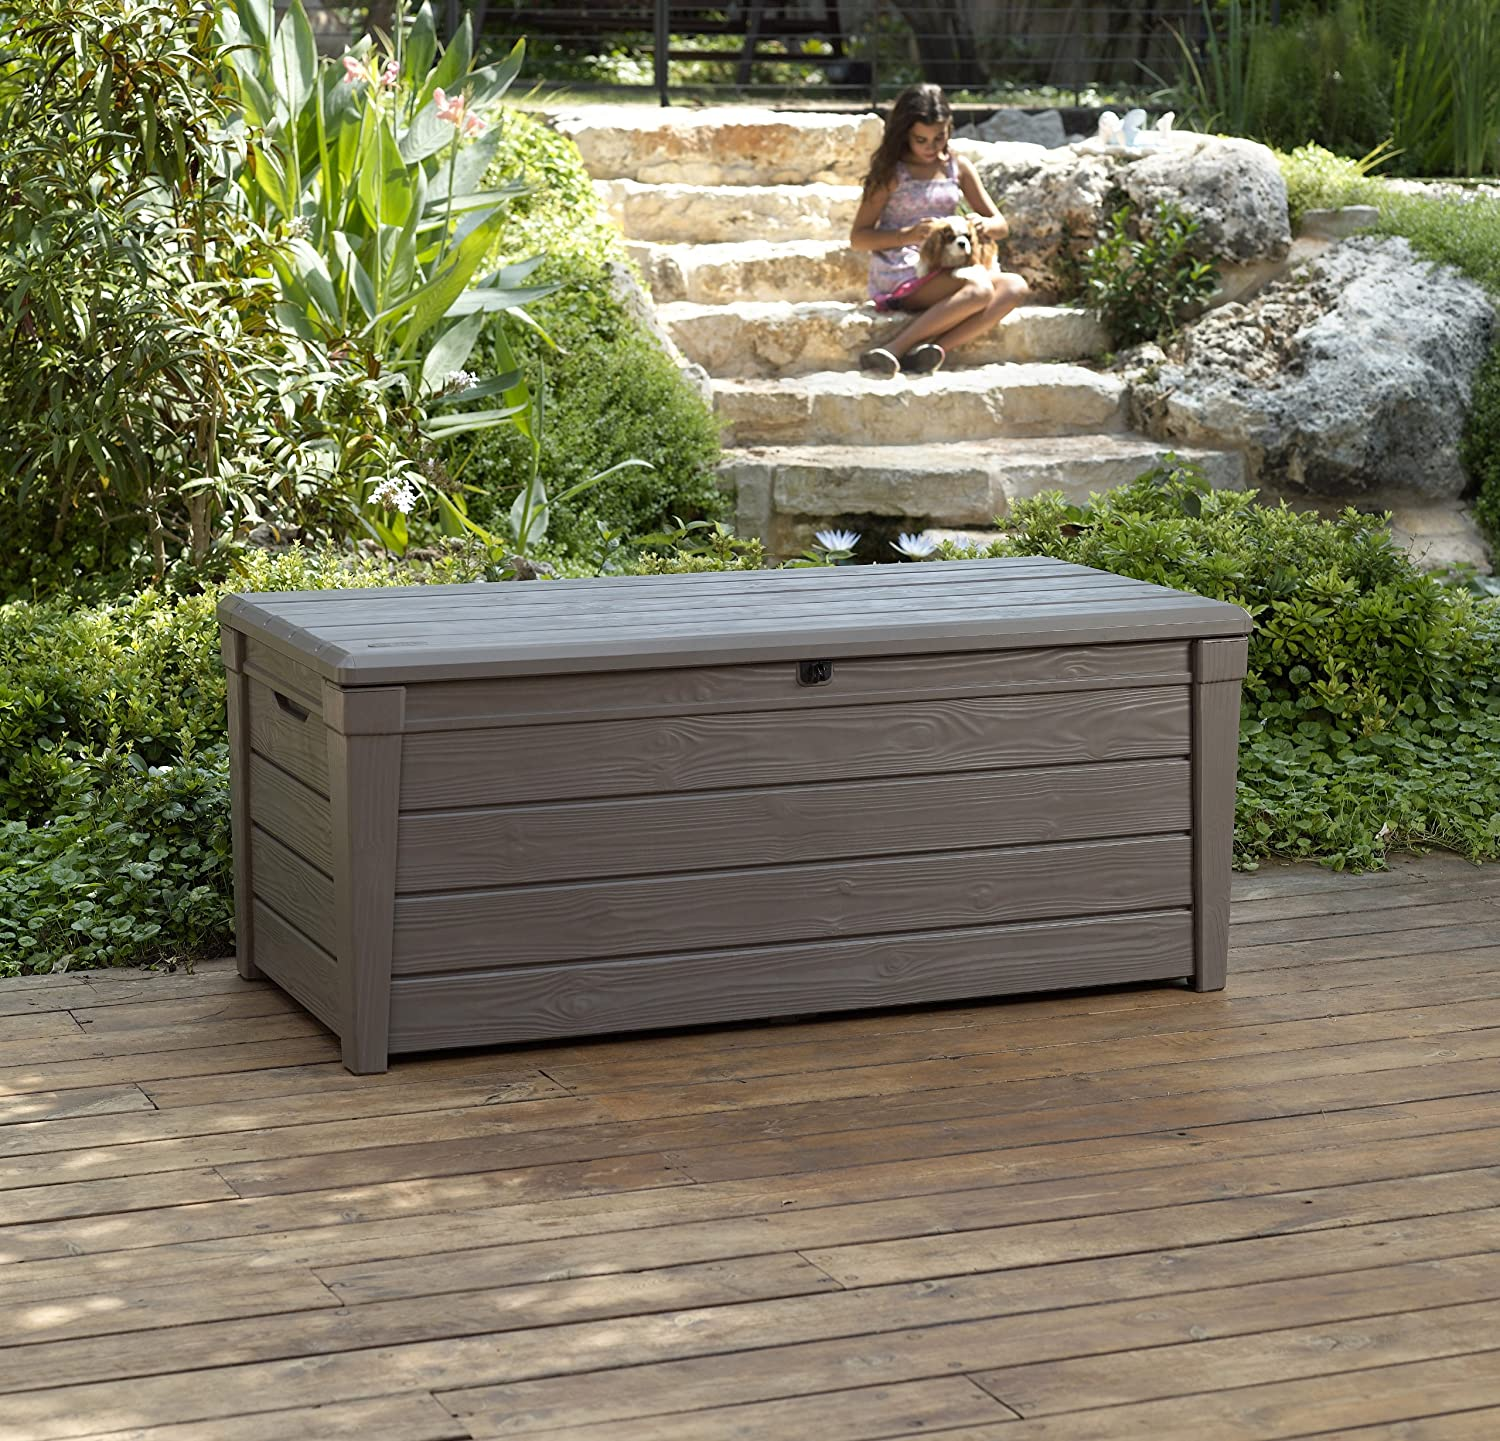 diy wood deck box. amazon.com : keter brightwood 120 gallon outdoor garden patio storage furniture deck box \u0026 diy wood